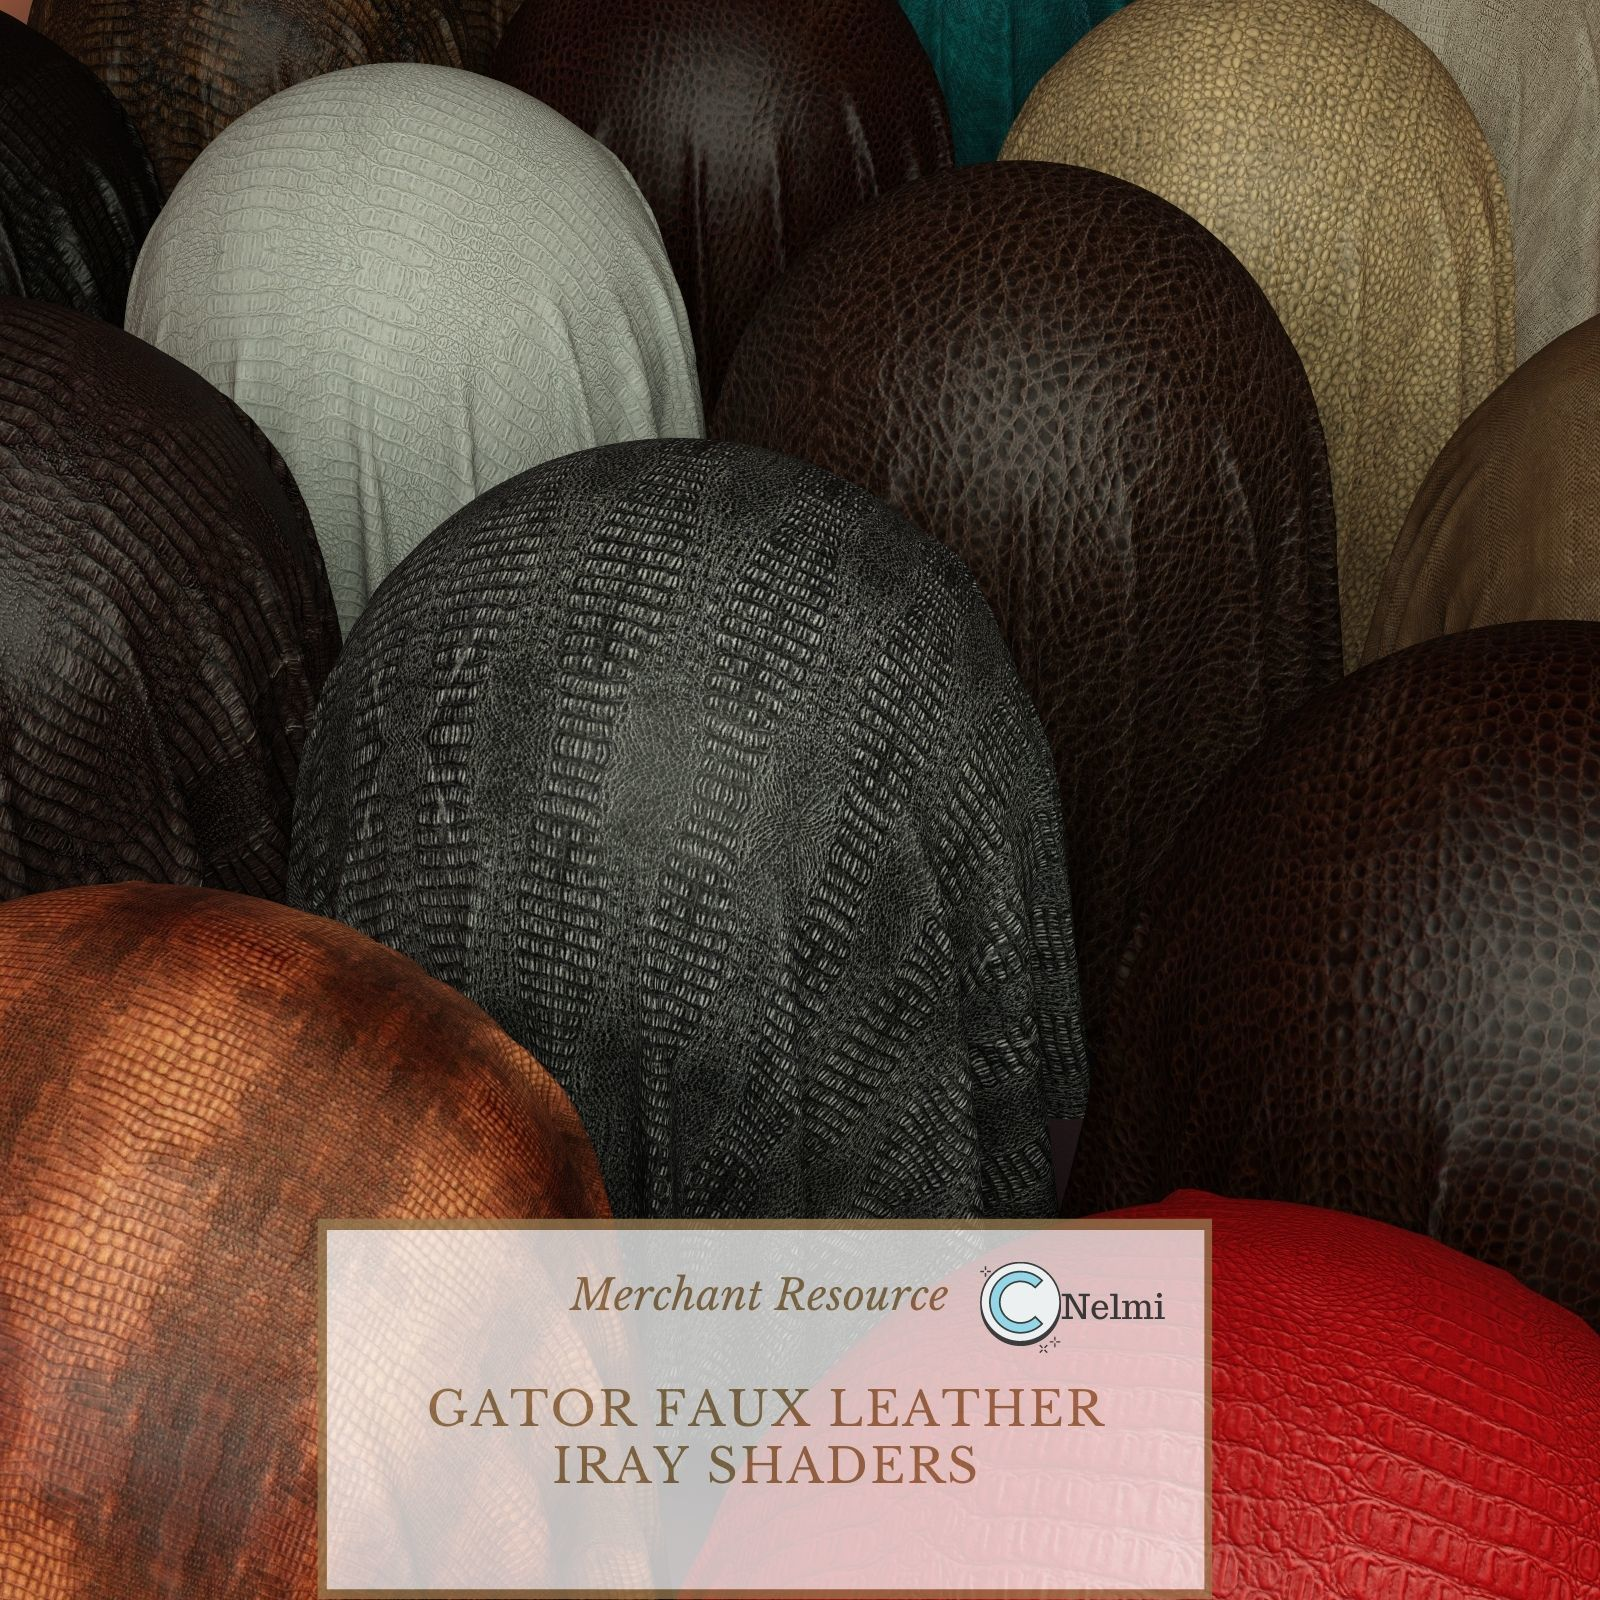 Gator Faux Leather Iray Shaders - Merchant Resource